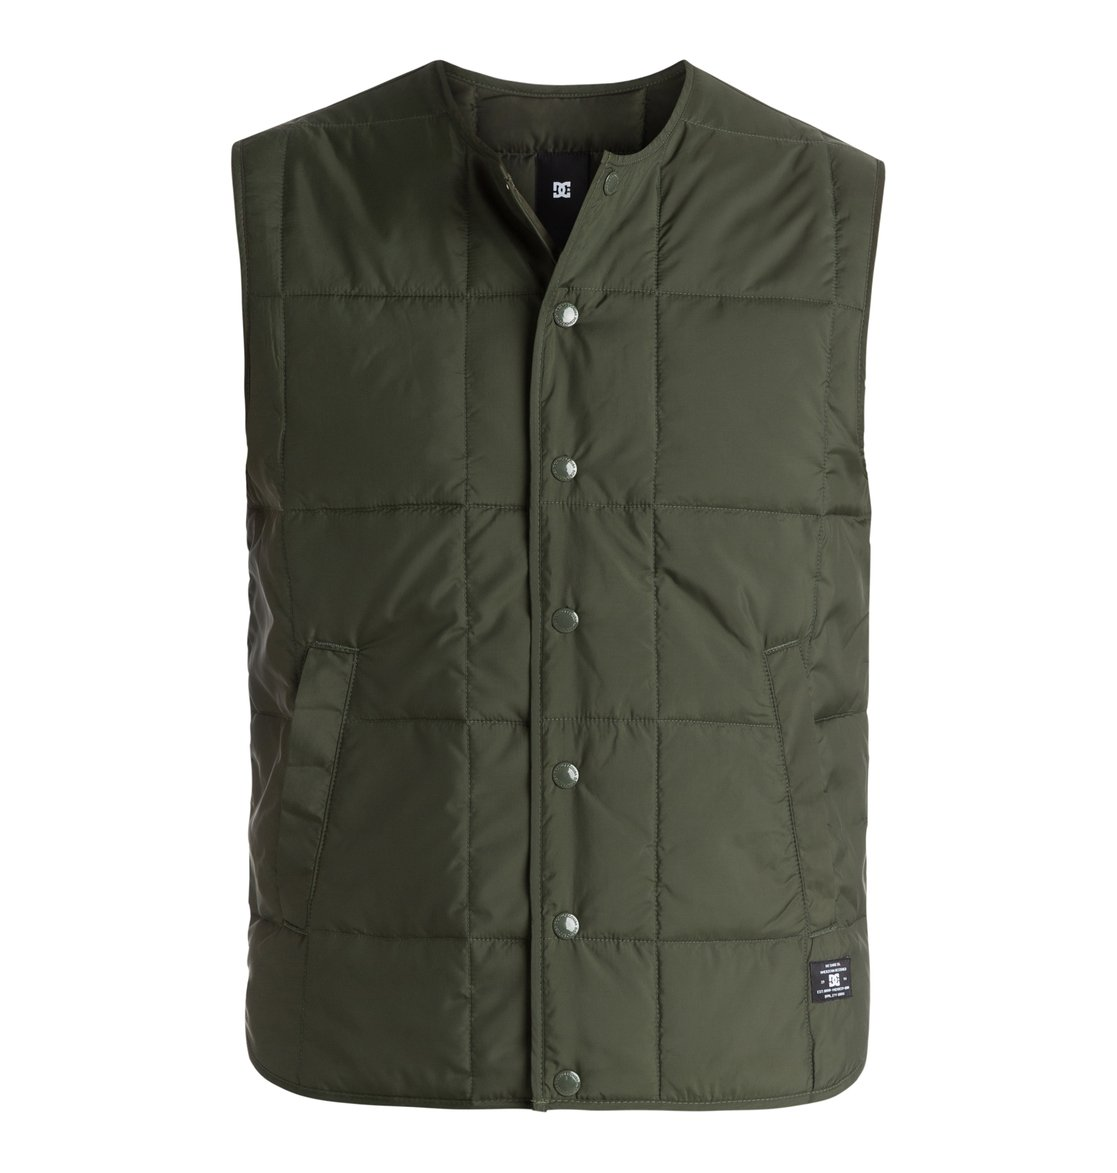 Стеганый мужской жилет FawdonThe Fawdon quilted gilet is the go-to-piece for lightweight warmth. Whether you wear it under a jacket as an extra layer, or over a shirt for added insulation, its versatile design and military-inspired aesthetics can be worked into any look. Crafted from soft square-quilted polyester taffeta the Fawdon is finished with enamel DC buttons and 2 handy front pockets.<br>